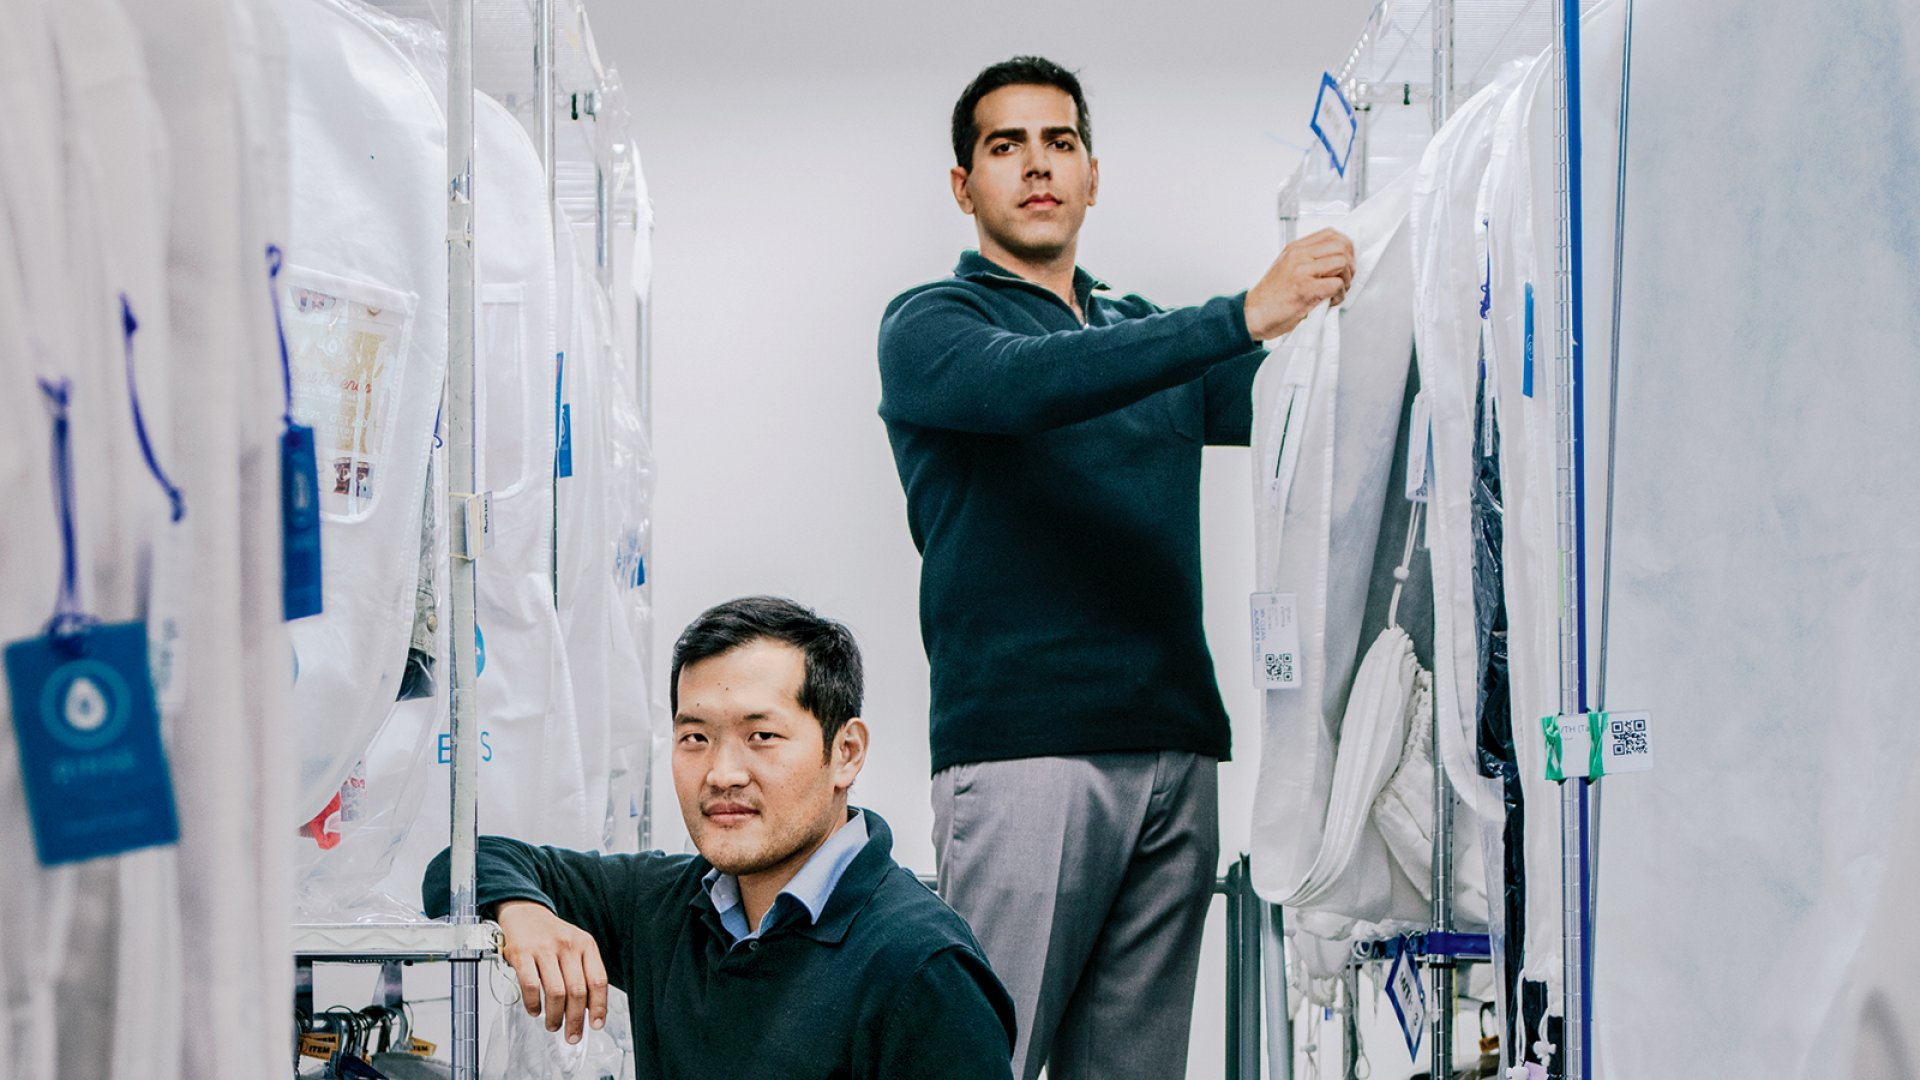 Rinse co-founders James Joun (left) and Ajay Prakash, at their company's San Francisco headquarters. Joun's inspiration for the company stemmed from a fateful visit to the mom-and-pop dry cleaner his parents have run for more than 25 years.